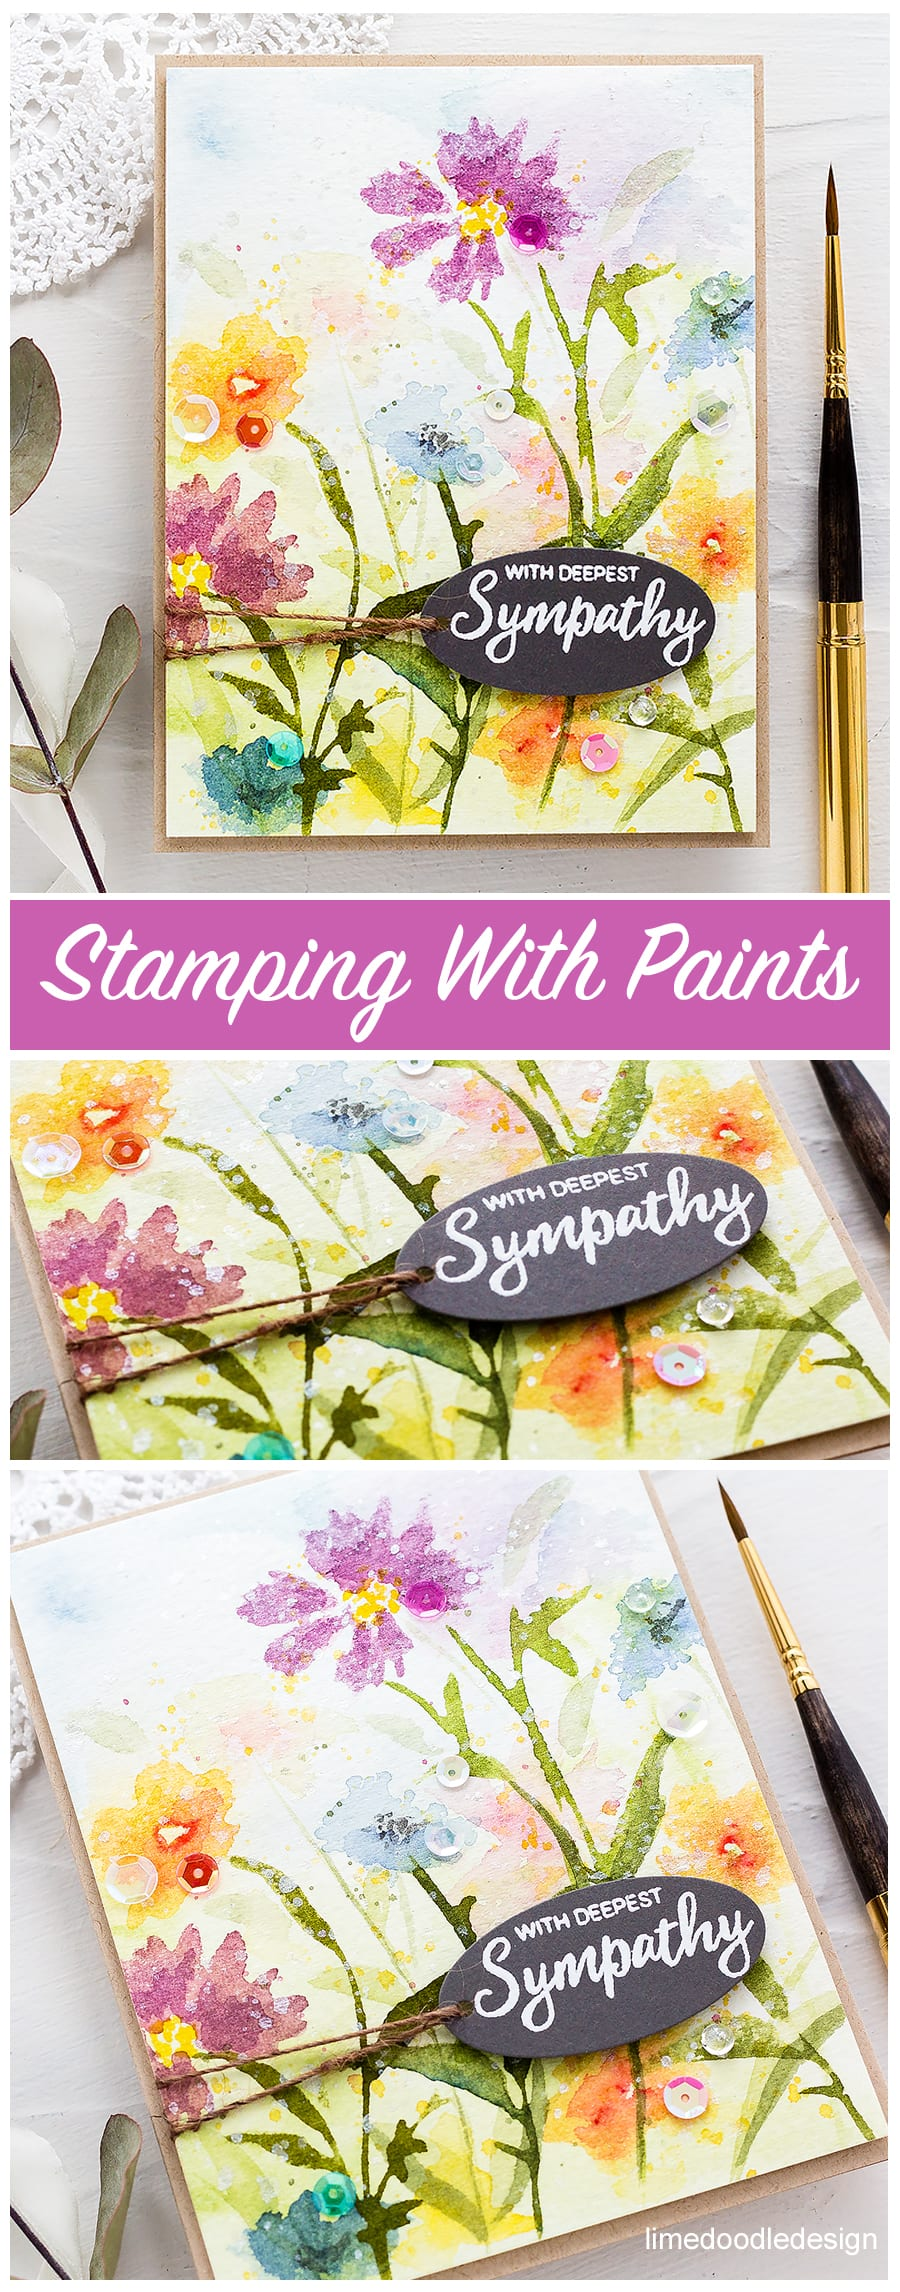 Handmade wildflower sympathy card by Debby Hughes stamping with watercolour paints. Find out more here: https://limedoodledesign.com/2018/04/video-altenew-4th-anniversary-blog-hop-day-2-giveaway/